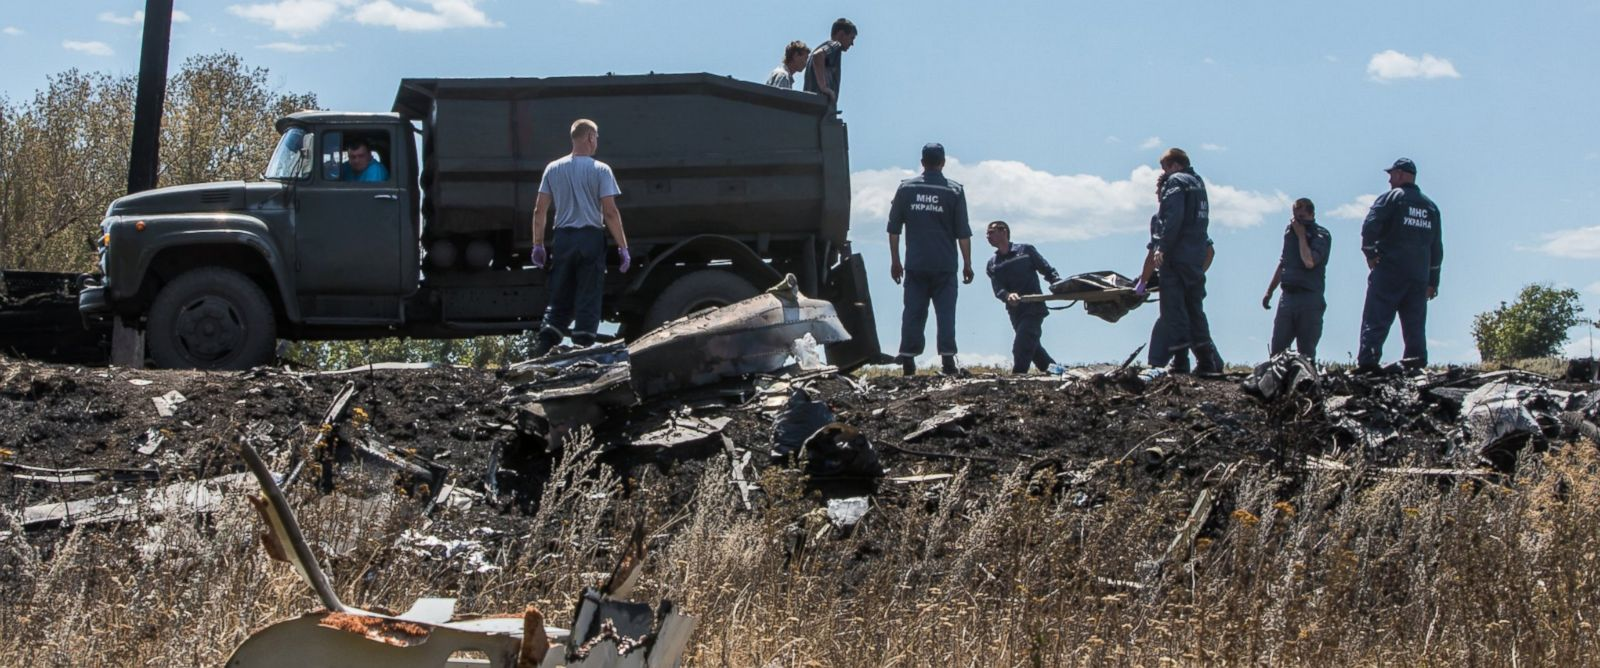 PHOTO: Personnel from the Ukrainian Emergencies Ministry load the bodies of victims of Malaysia Airlines flight MH17 into a truck at the crash site on July 21, 2014 in Grabovo, Ukraine.